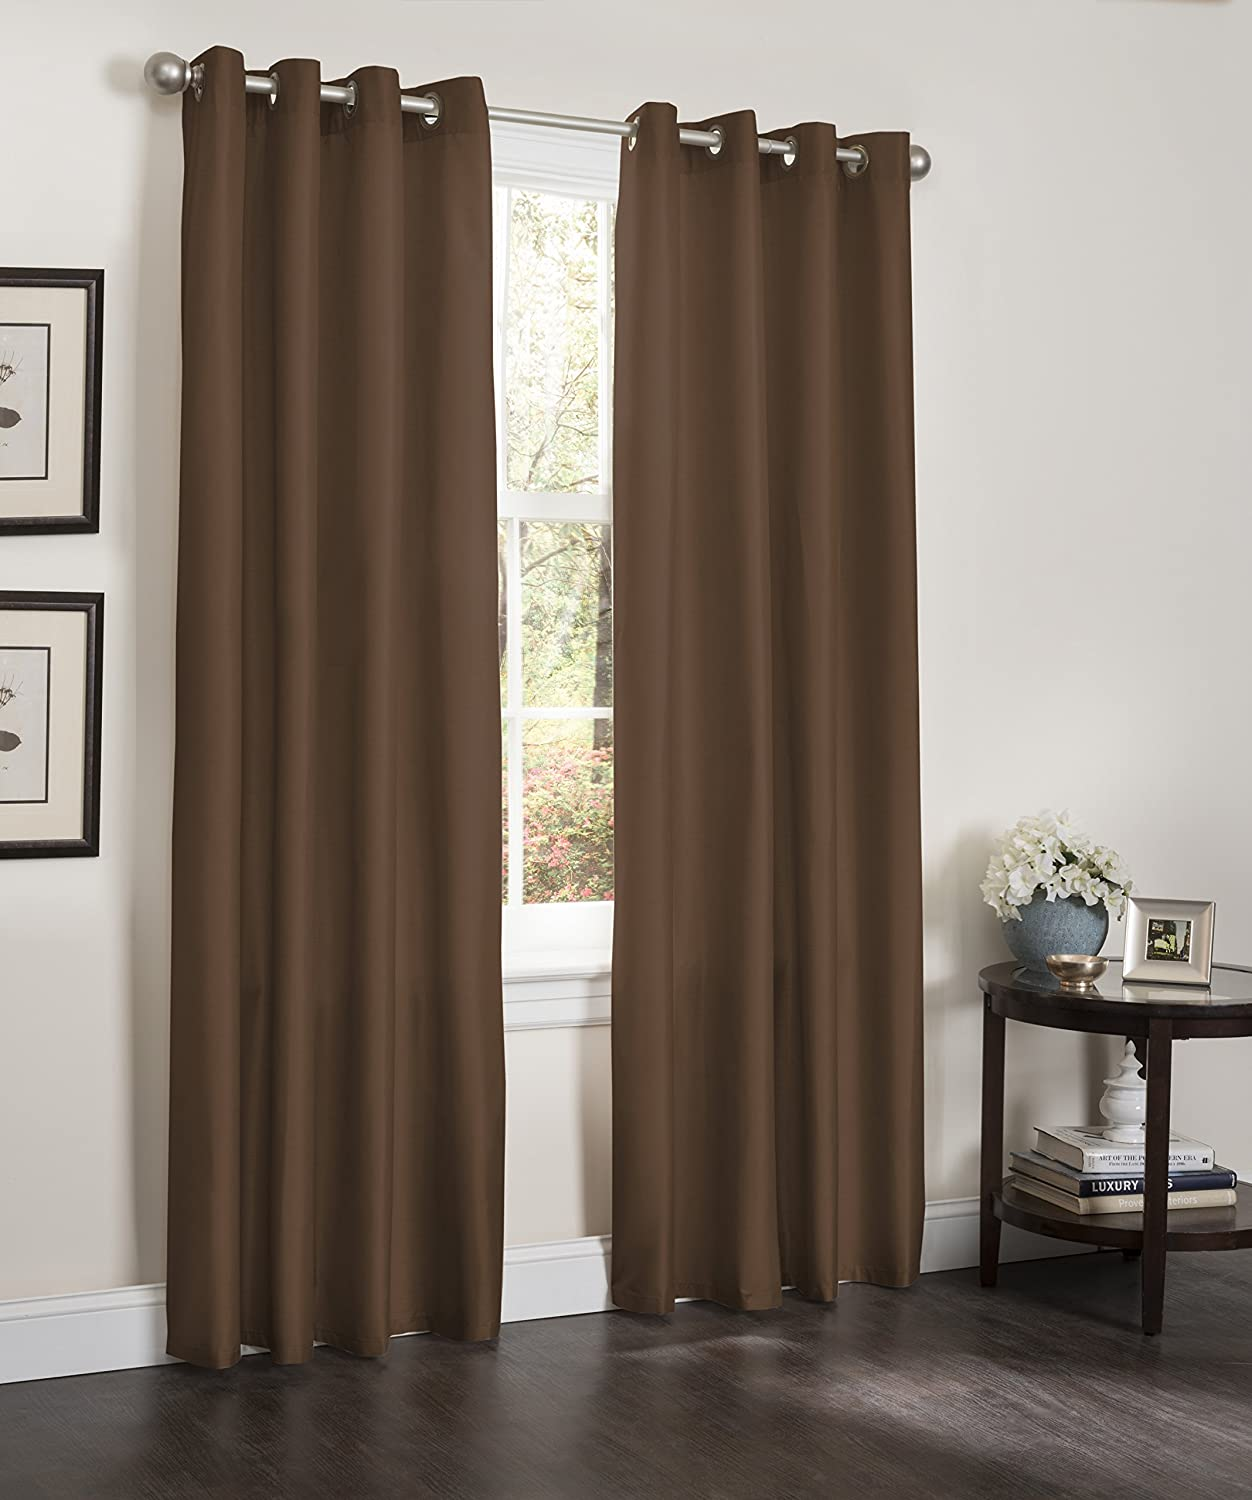 Amazon.com: 2 Blackout Window Curtain Panels, Foam Back Lined Curtains,  Thick Erin Panels, 55x90 (Black): Home & Kitchen